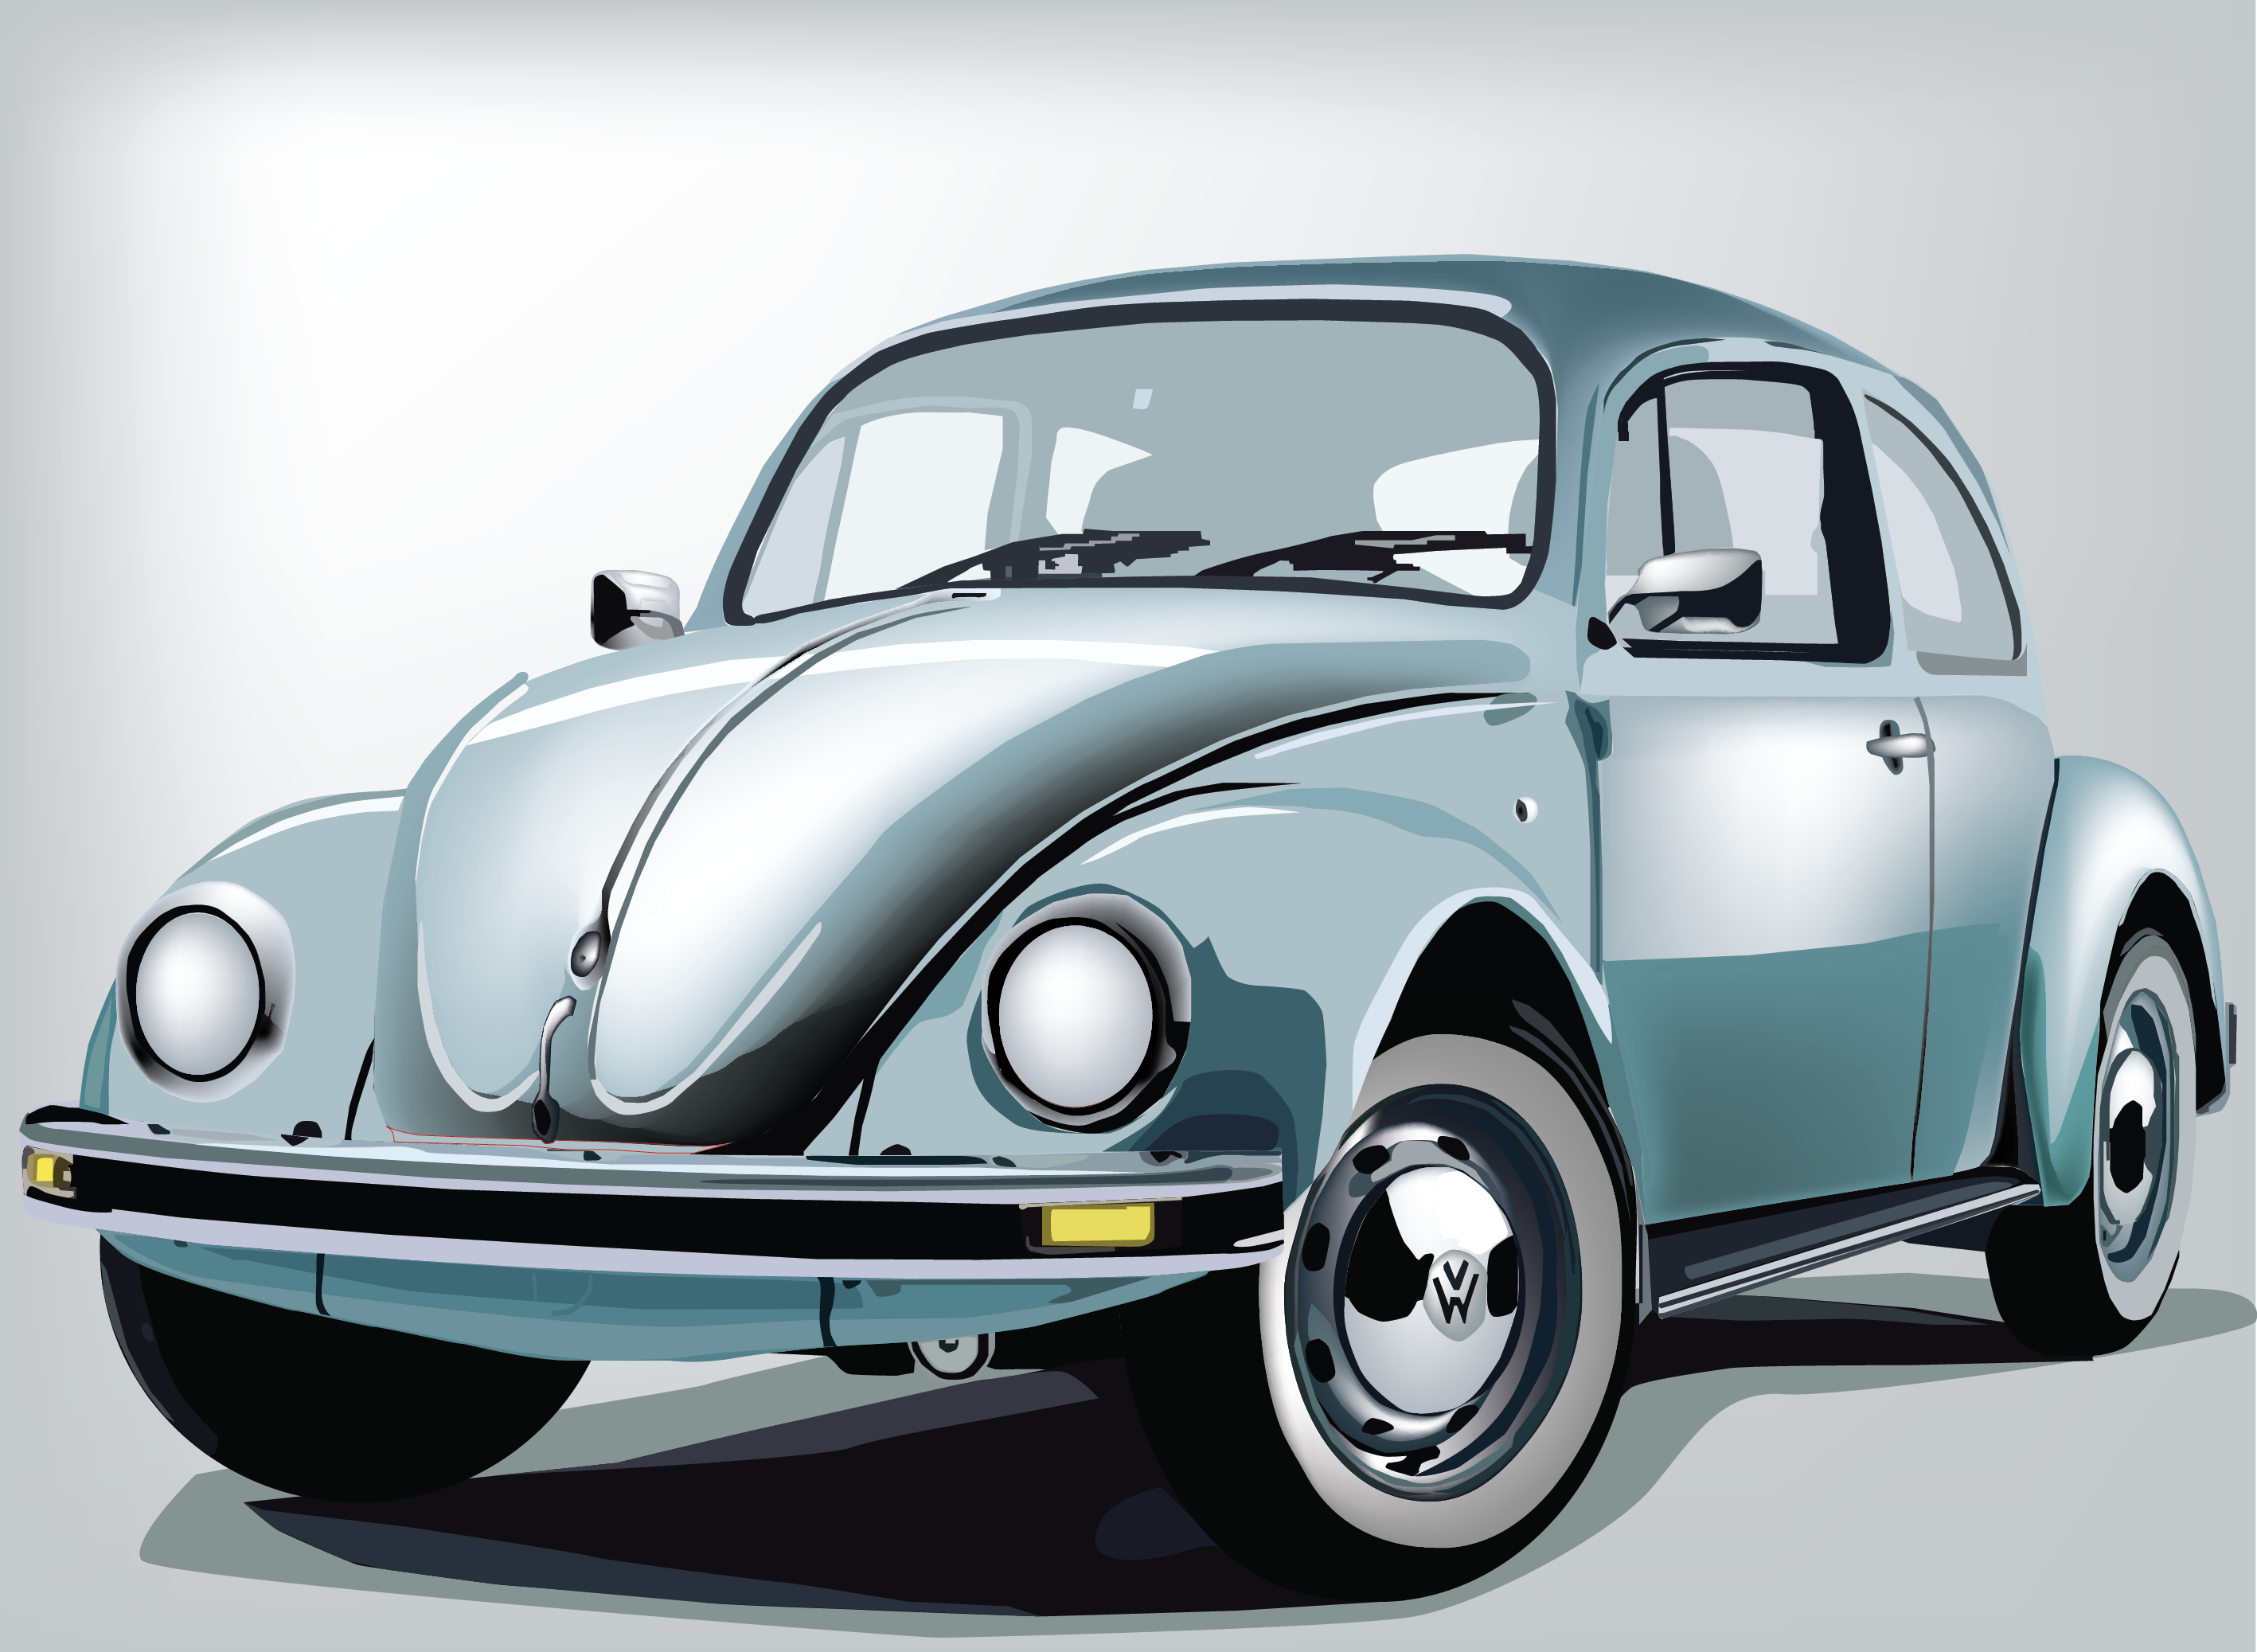 Download Free Classic Car Vector Graphic By Evand Creative Fabrica for Cricut Explore, Silhouette and other cutting machines.